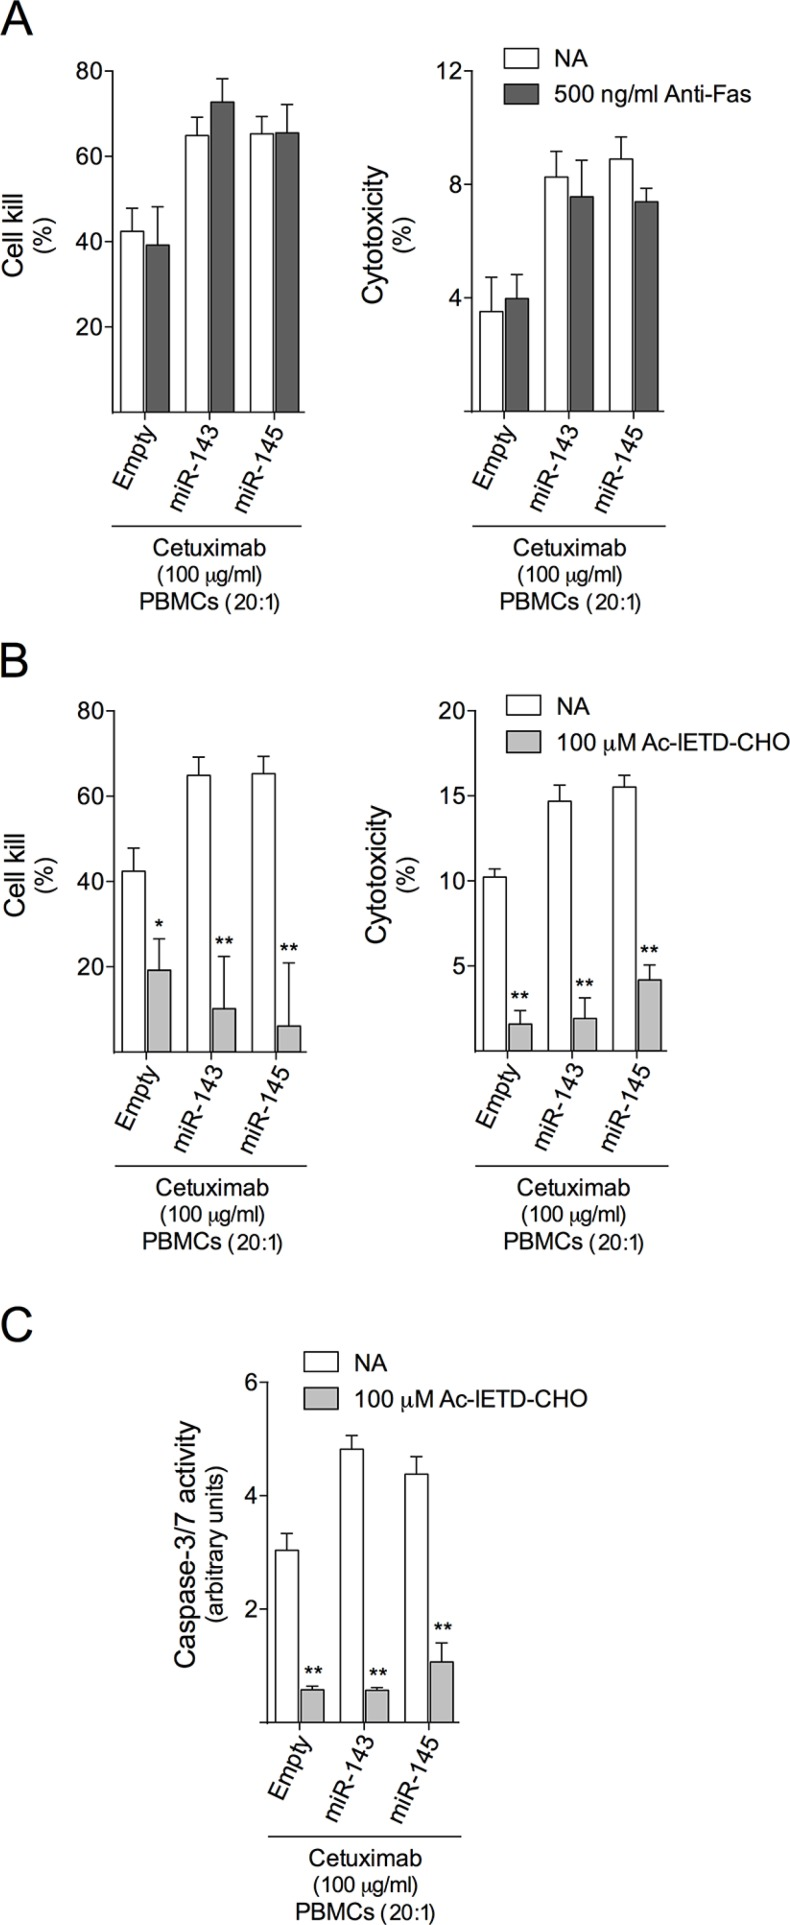 <t>Granzyme</t> B inhibition abrogates cetuximab-mediated ADCC in HCT116 cells HCT116-Empty, HCT116-miR-143 or HCT116-miR-145 cells were exposed to 100 μg/ml cetuximab or PBMCs (20:1) alone, or co-treatment of cetuximab together with PBMCs, or vehicle (control). Cetuximab-mediated ADCC was evaluated using the xCELLigence system and LDH release assay in ( A ) cells pre-treated for 2 h with 500 ng/ml of neutralizing antibody to Fas (ZB4), or in ( B ) cells exposed to PBMCs pretreated for 30 min with 100 μM Ac-IETD-CHO. ( C ) Caspase -3/7 activity was determined as described above. Results are expressed as (A, B) mean ± SEM, or (C) mean ± SEM fold-change to respective untreated cells. ** p